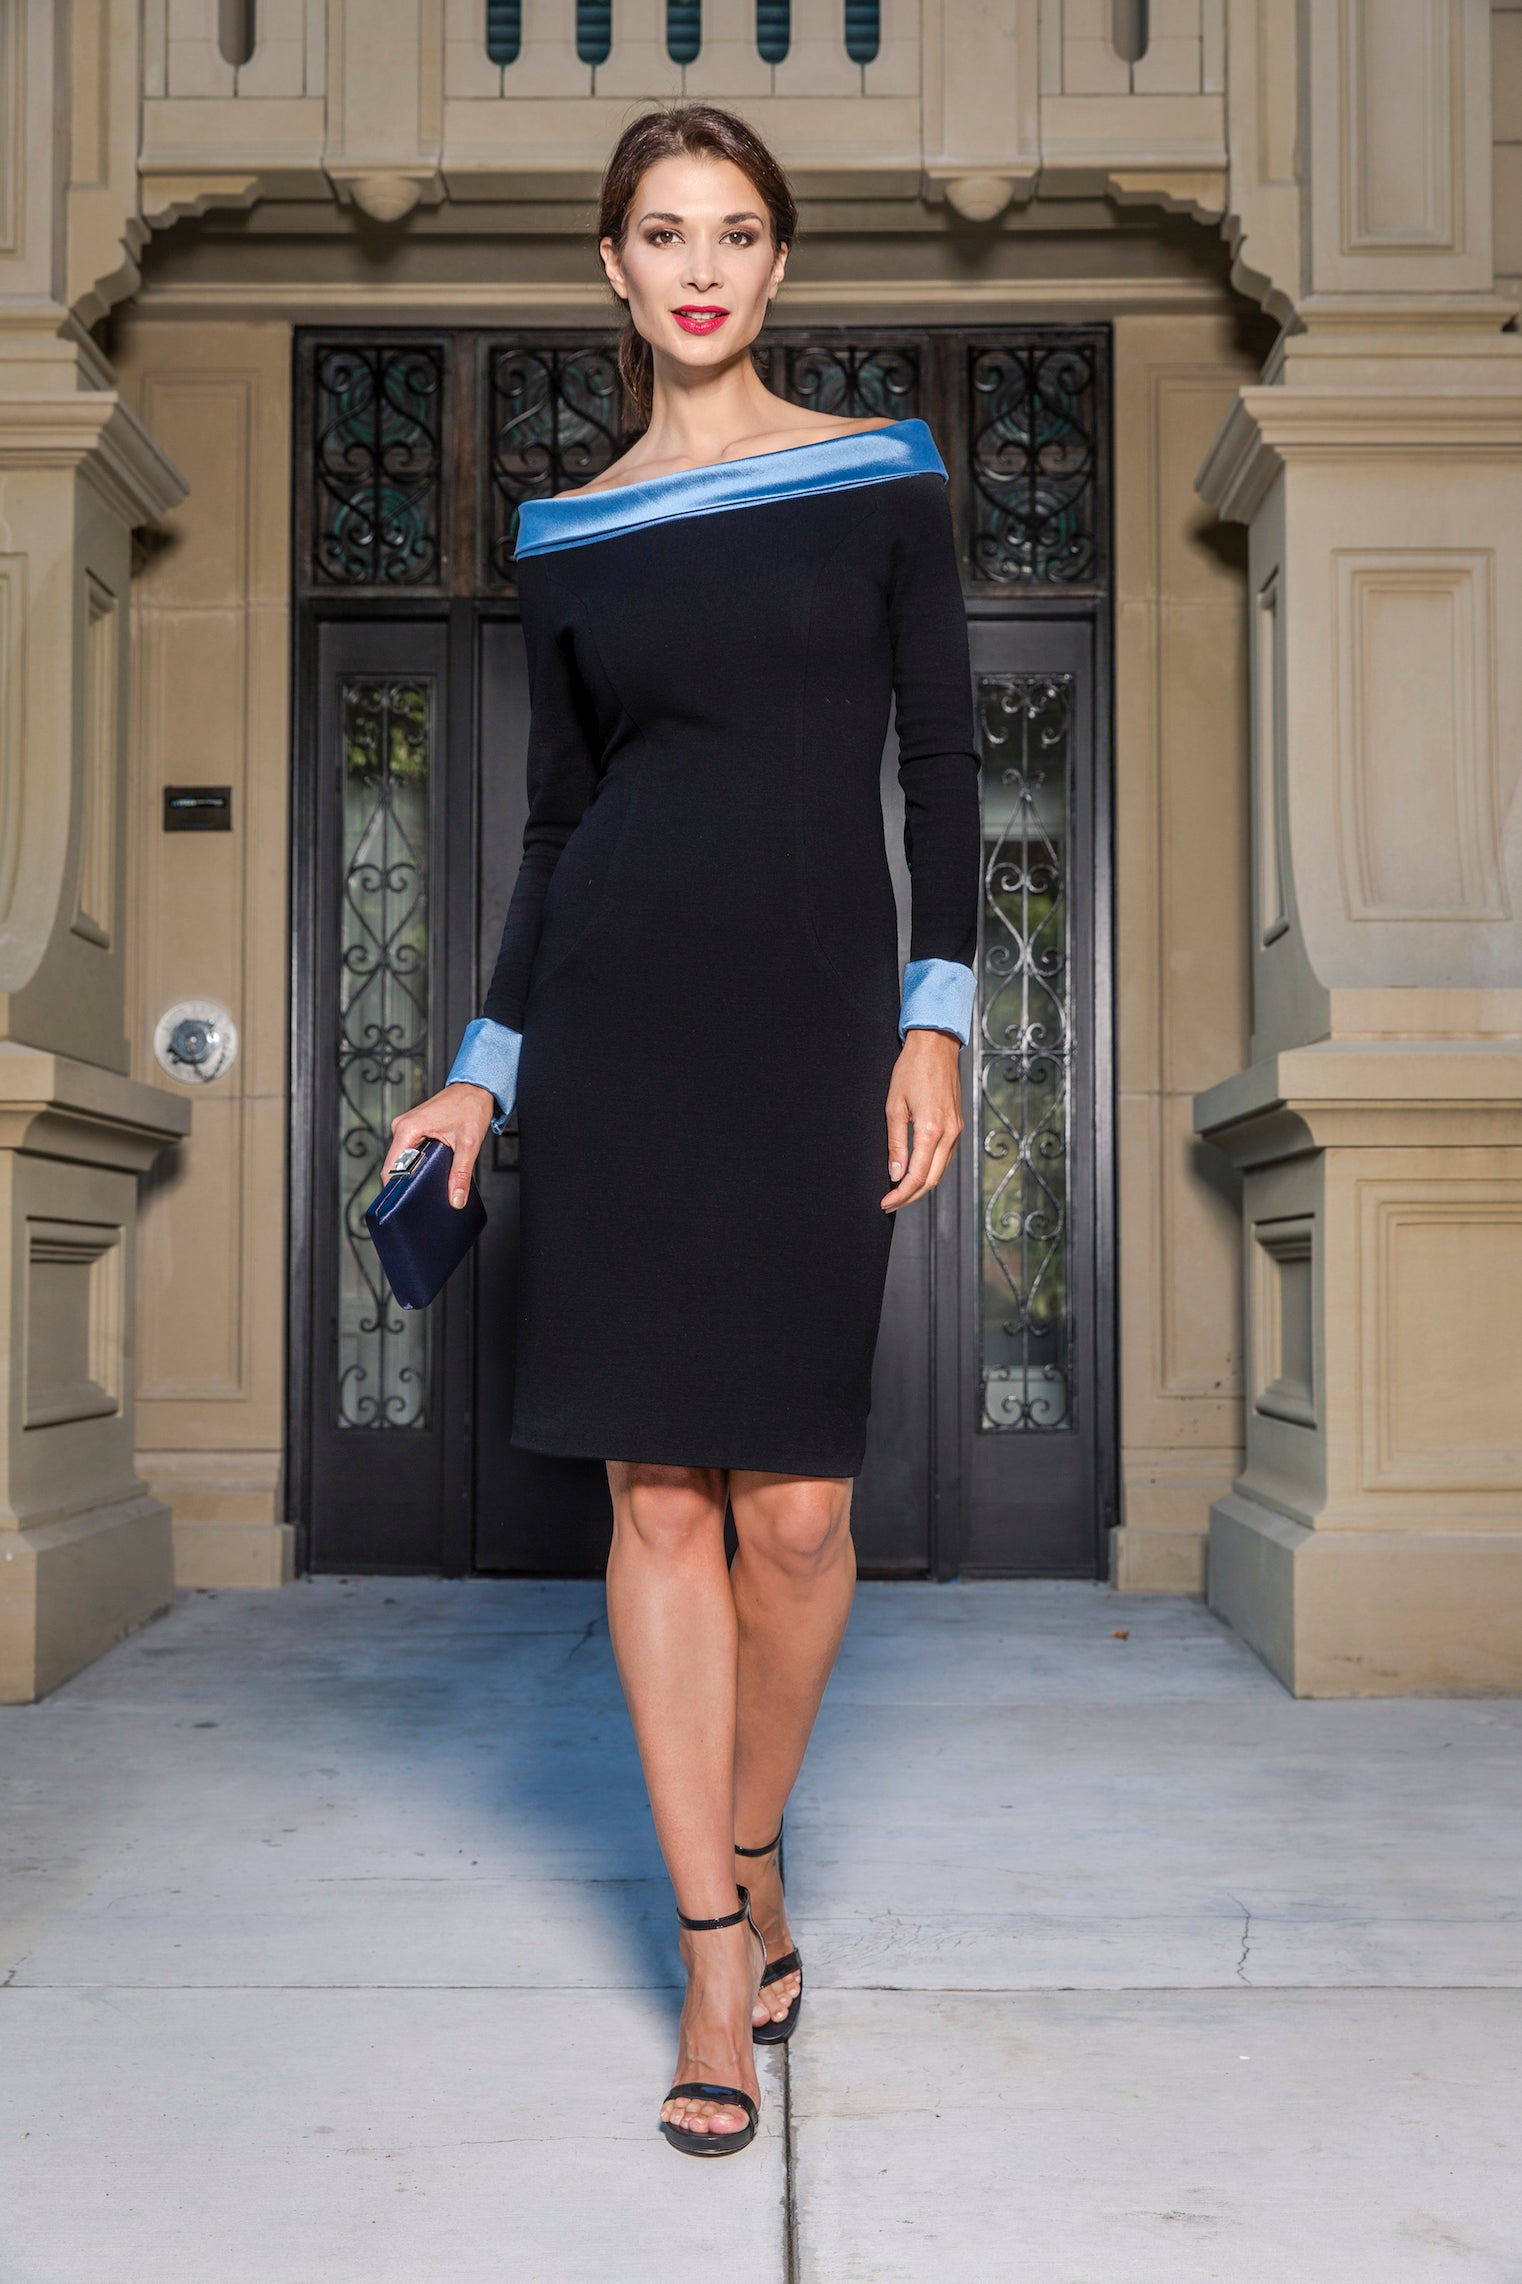 anna nieman dress Boston. The classic black dress with an updated touch of french-style.  This fitted dress is hand-made from wool jersey with an off-the-shoulder light-blue silk collar and matching french cuffs.